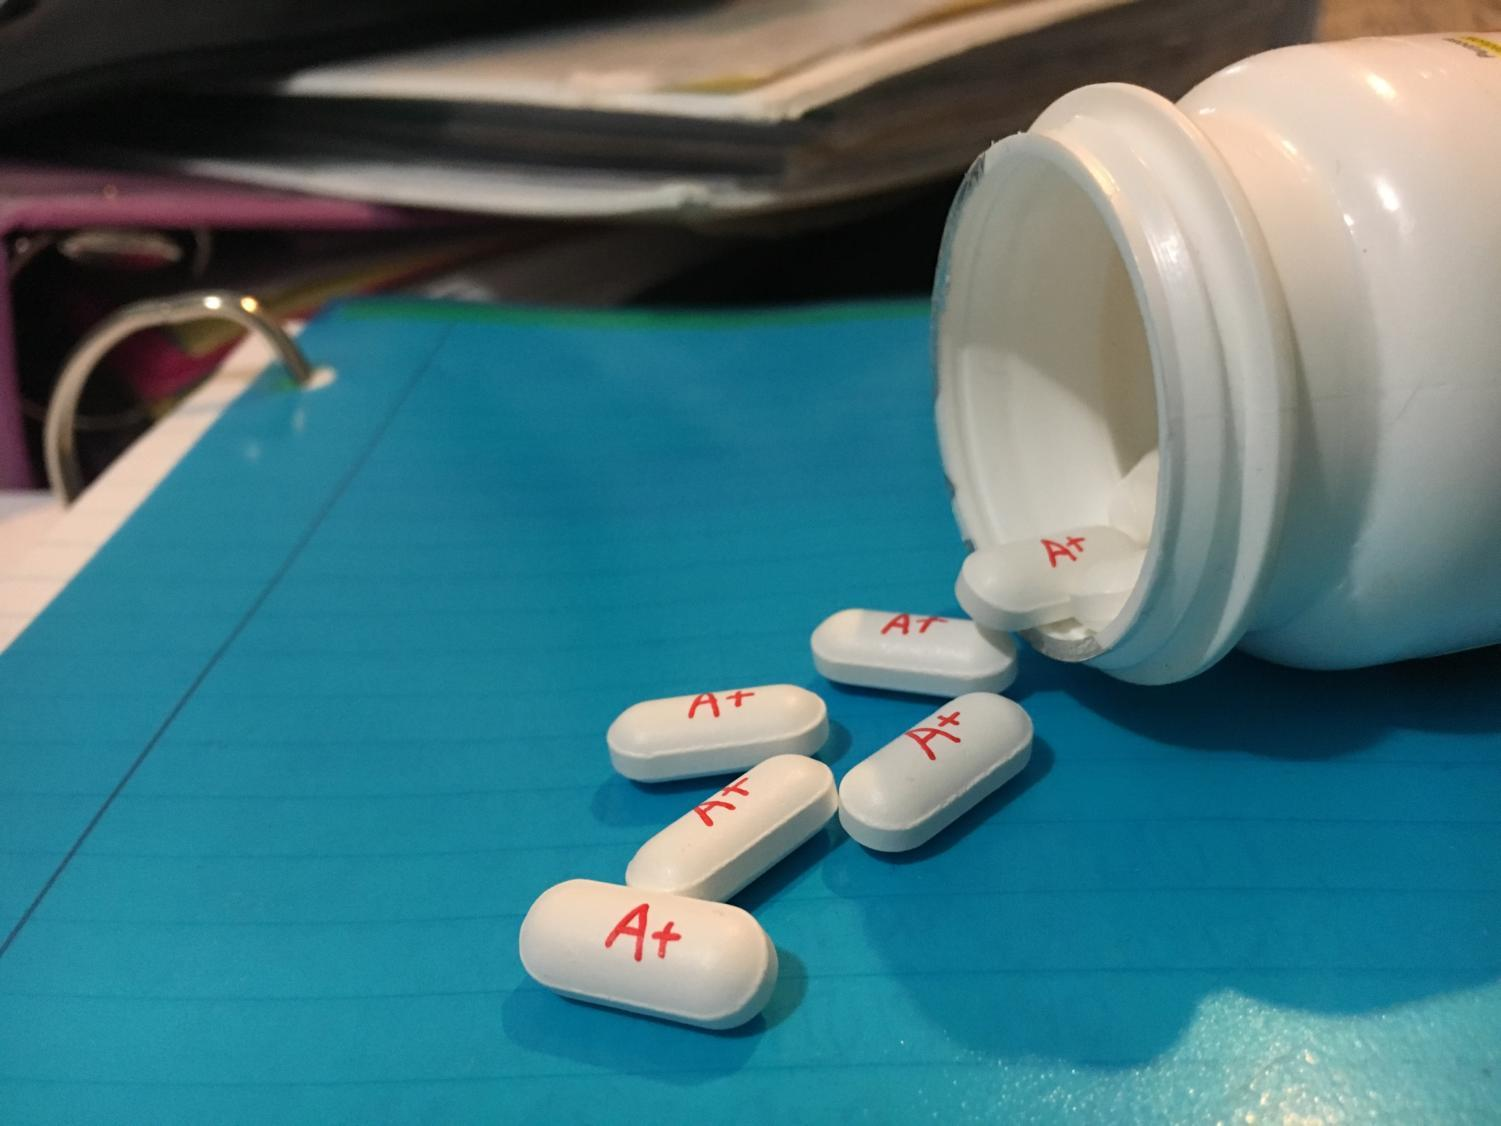 Many students will do whatever they can to receive a good grade. The A+ pills represent the addictive side of this craving, which many students face.